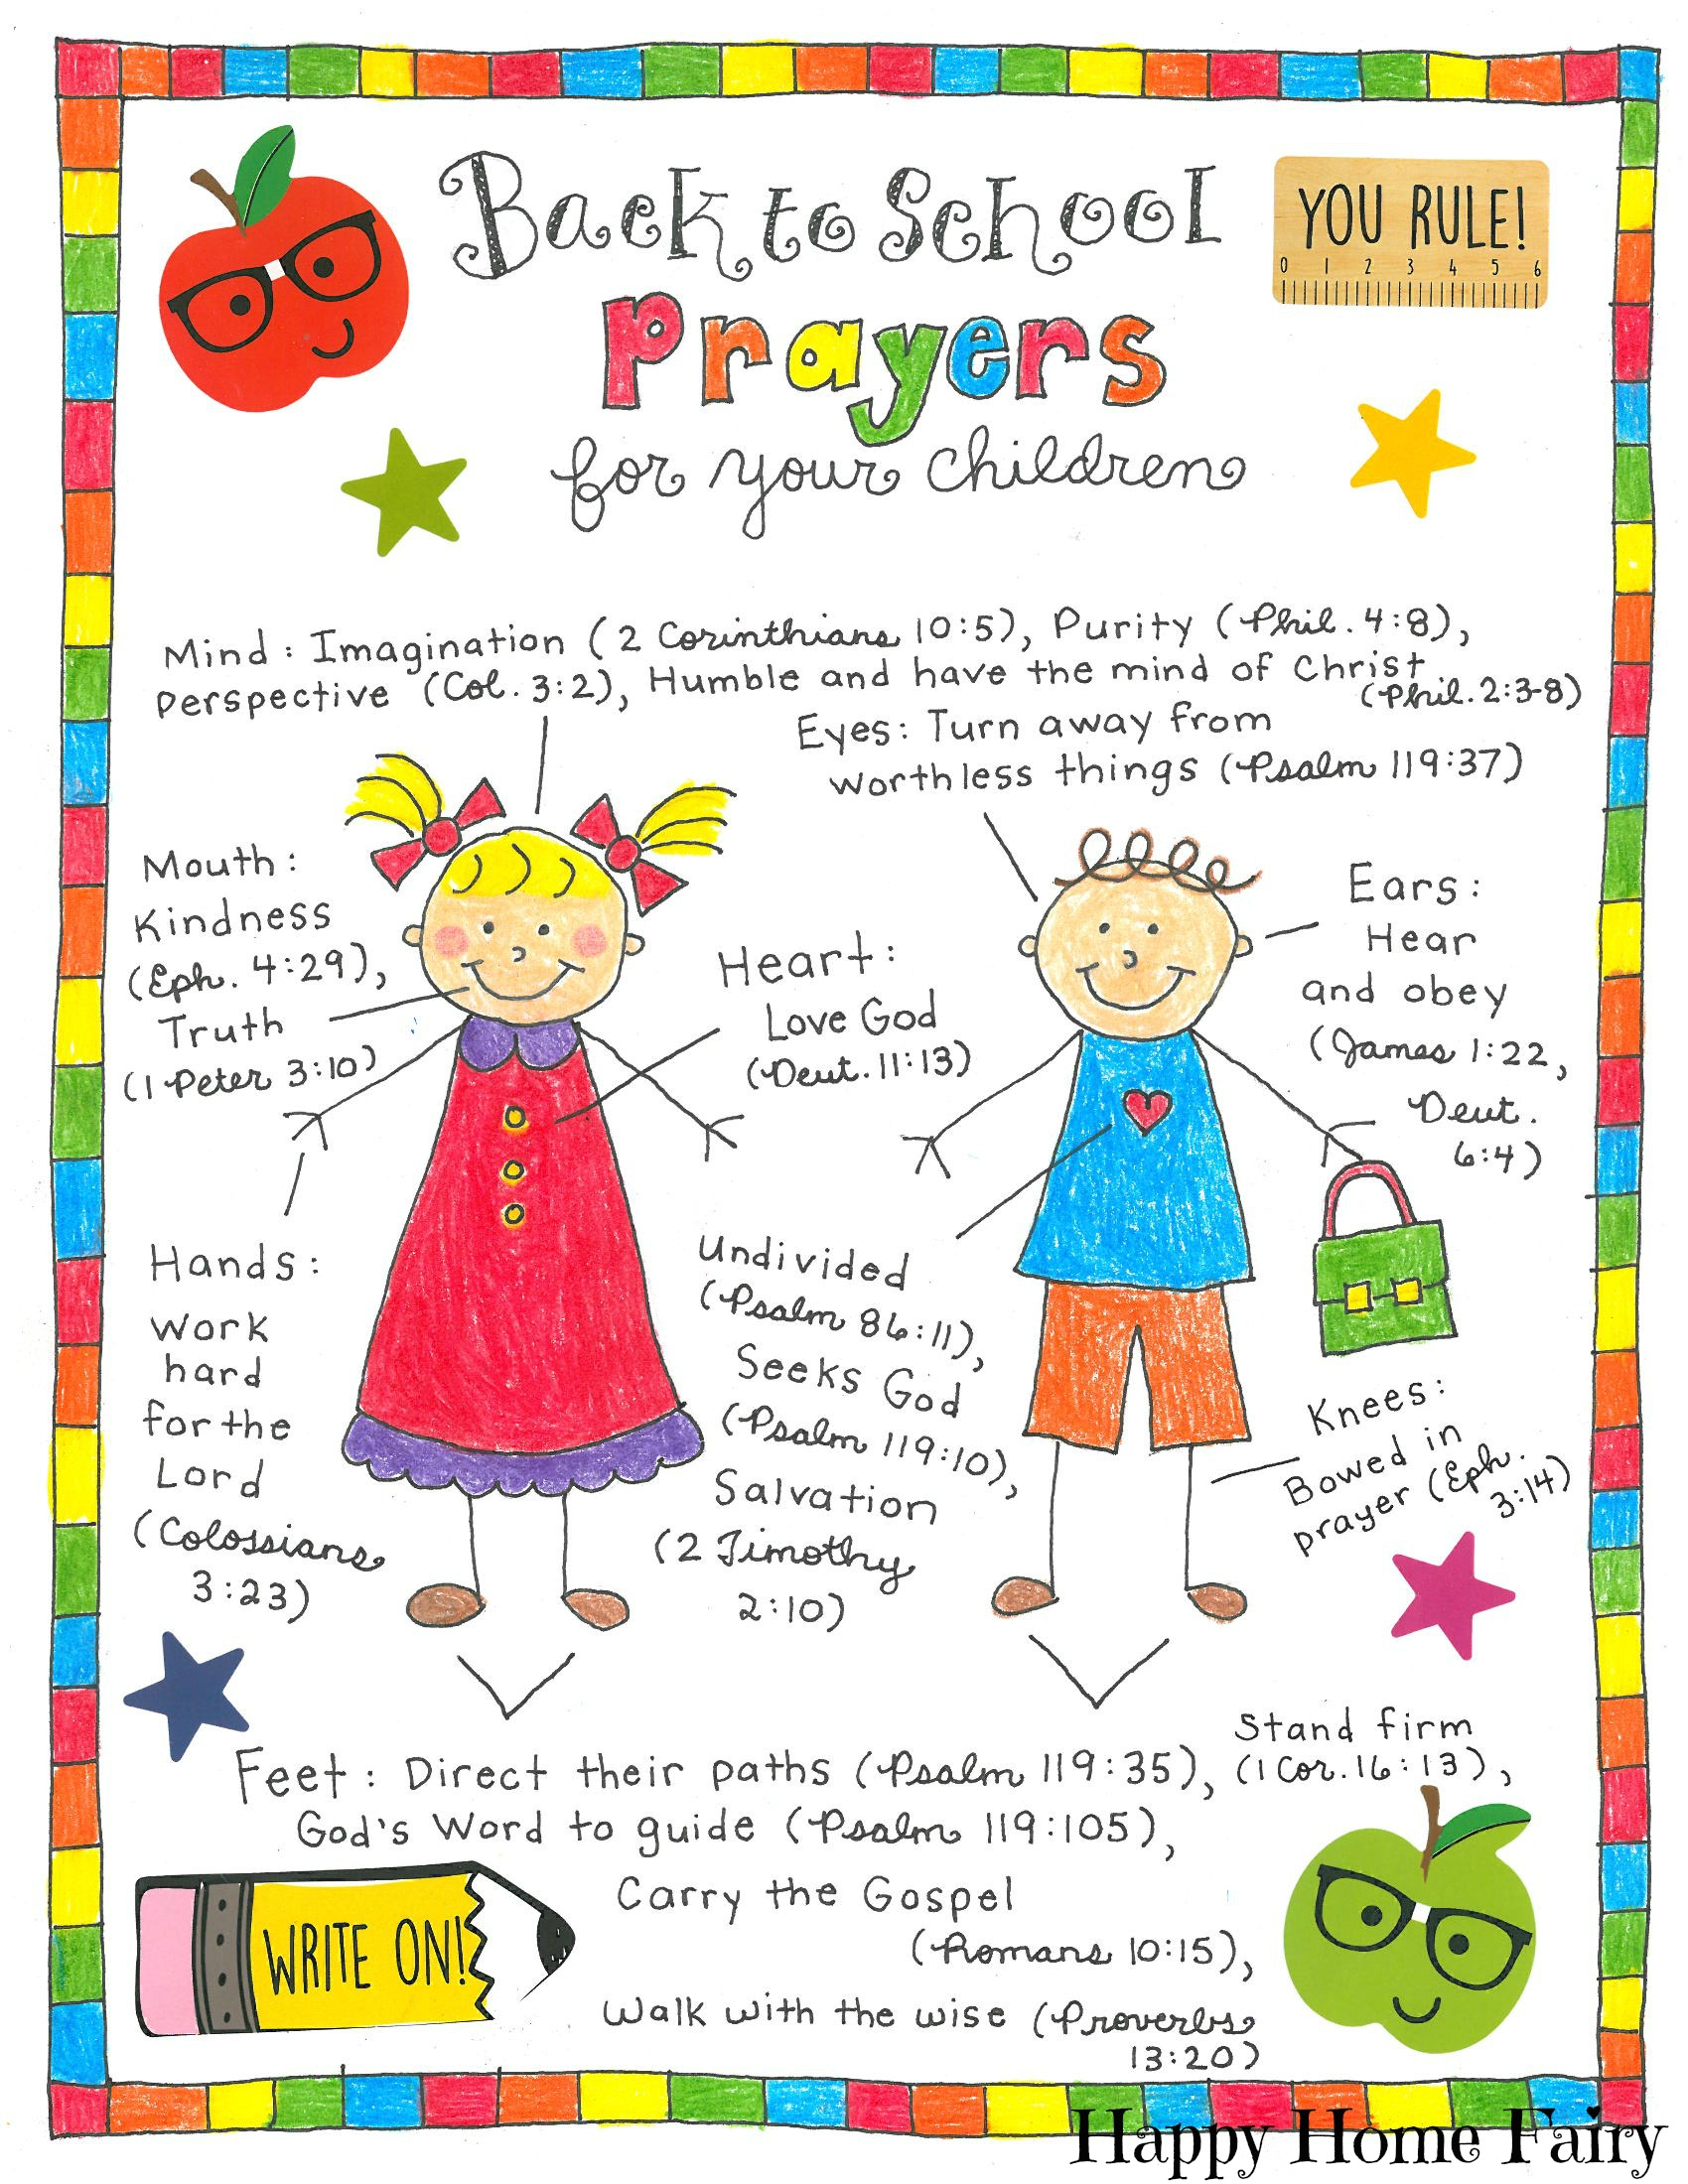 photograph regarding Moms in Prayer Prayer Sheets identified as Back again in direction of College Prayers For Your Little ones - Totally free Printable